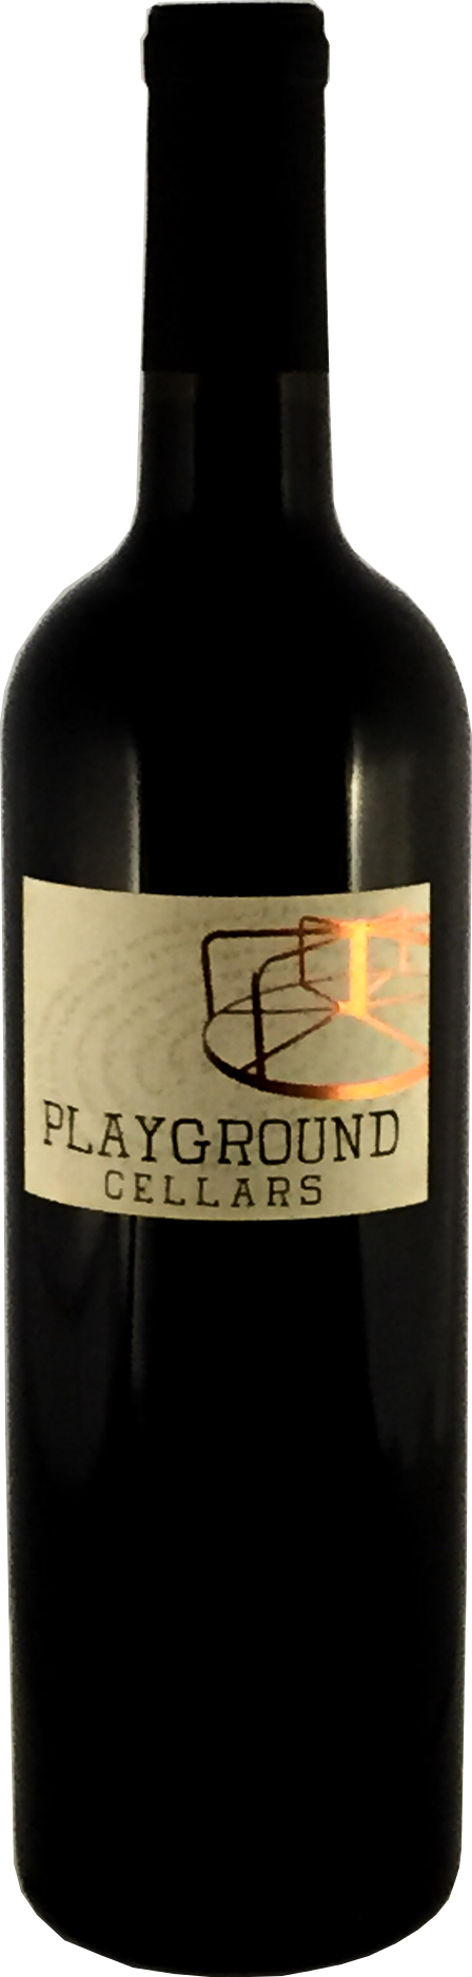 2013 Playground Cellars Paso Robles Tempranillo - Qorkz